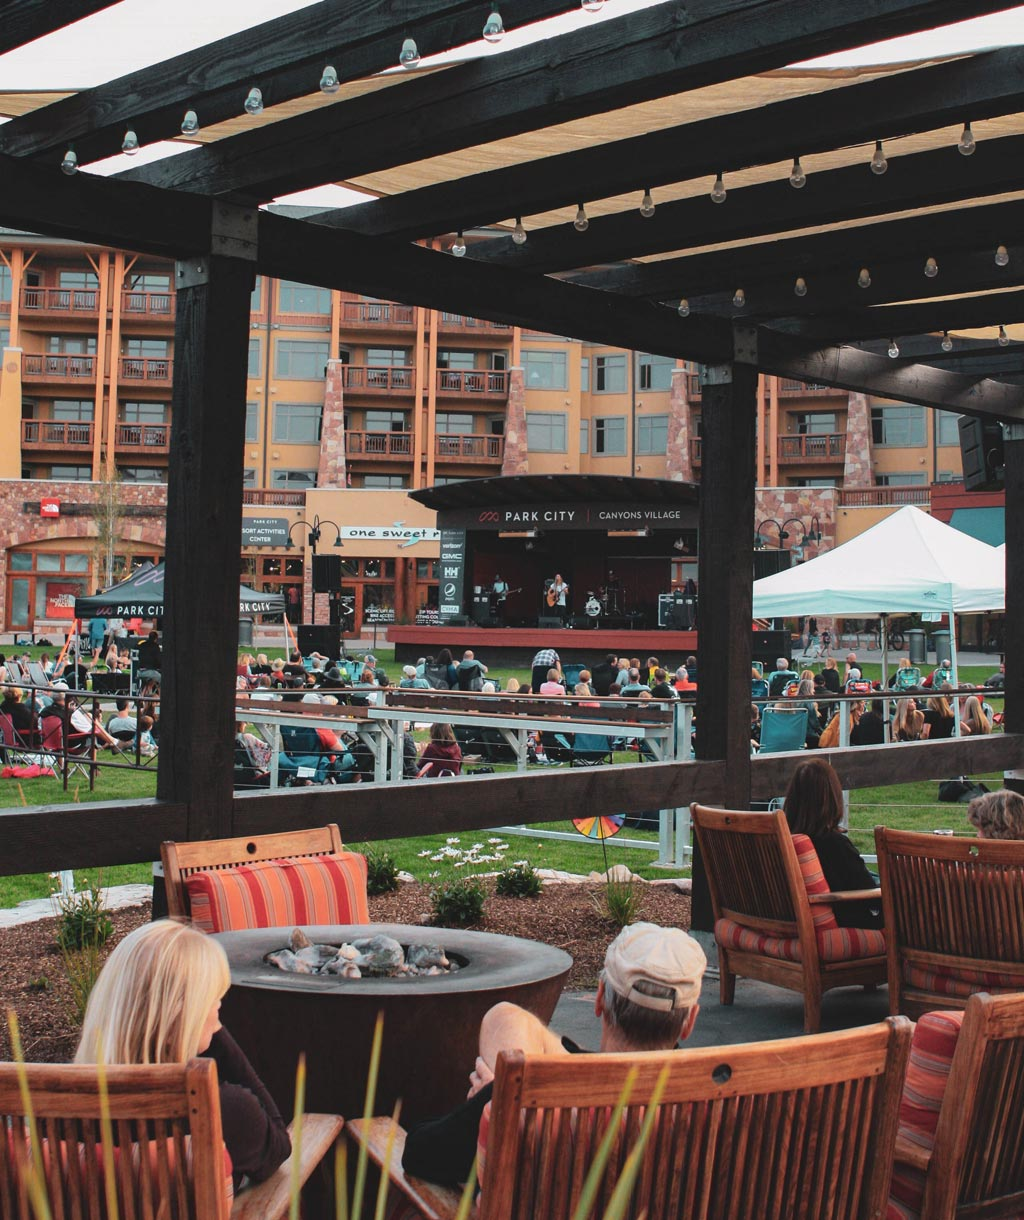 Summer Concert Series on the Lawn of Sundial Lodge in Canyons Village